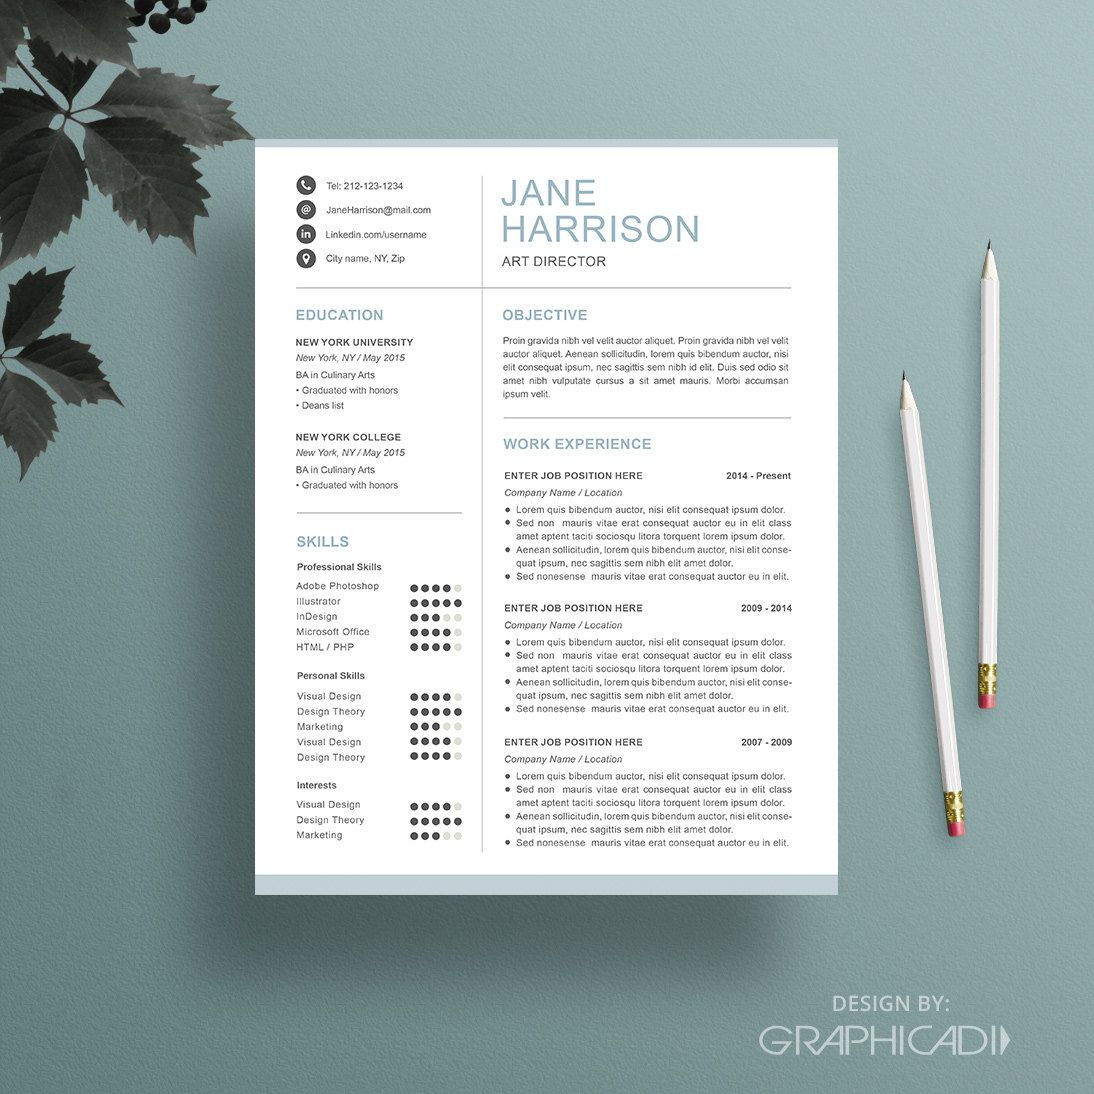 Creative Recruiter Resume Design Templates Iwork Pages Free